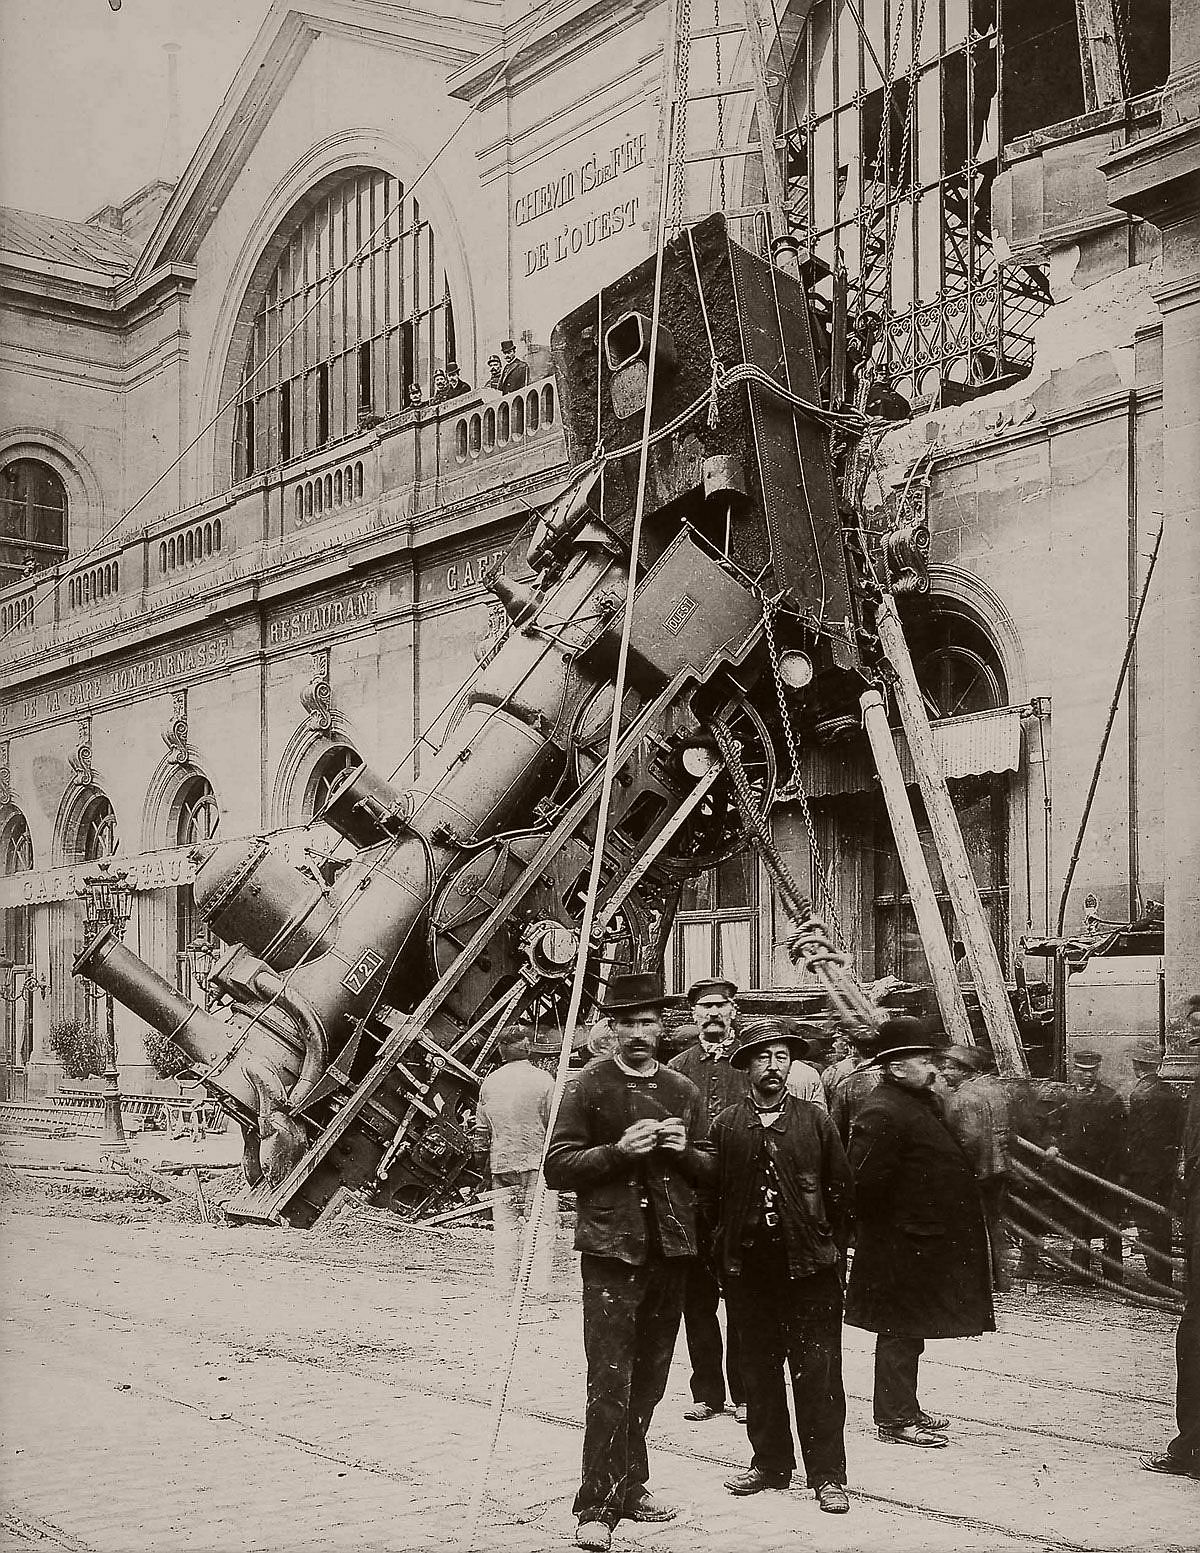 Montparnasse Train Derailment in Paris (1895)